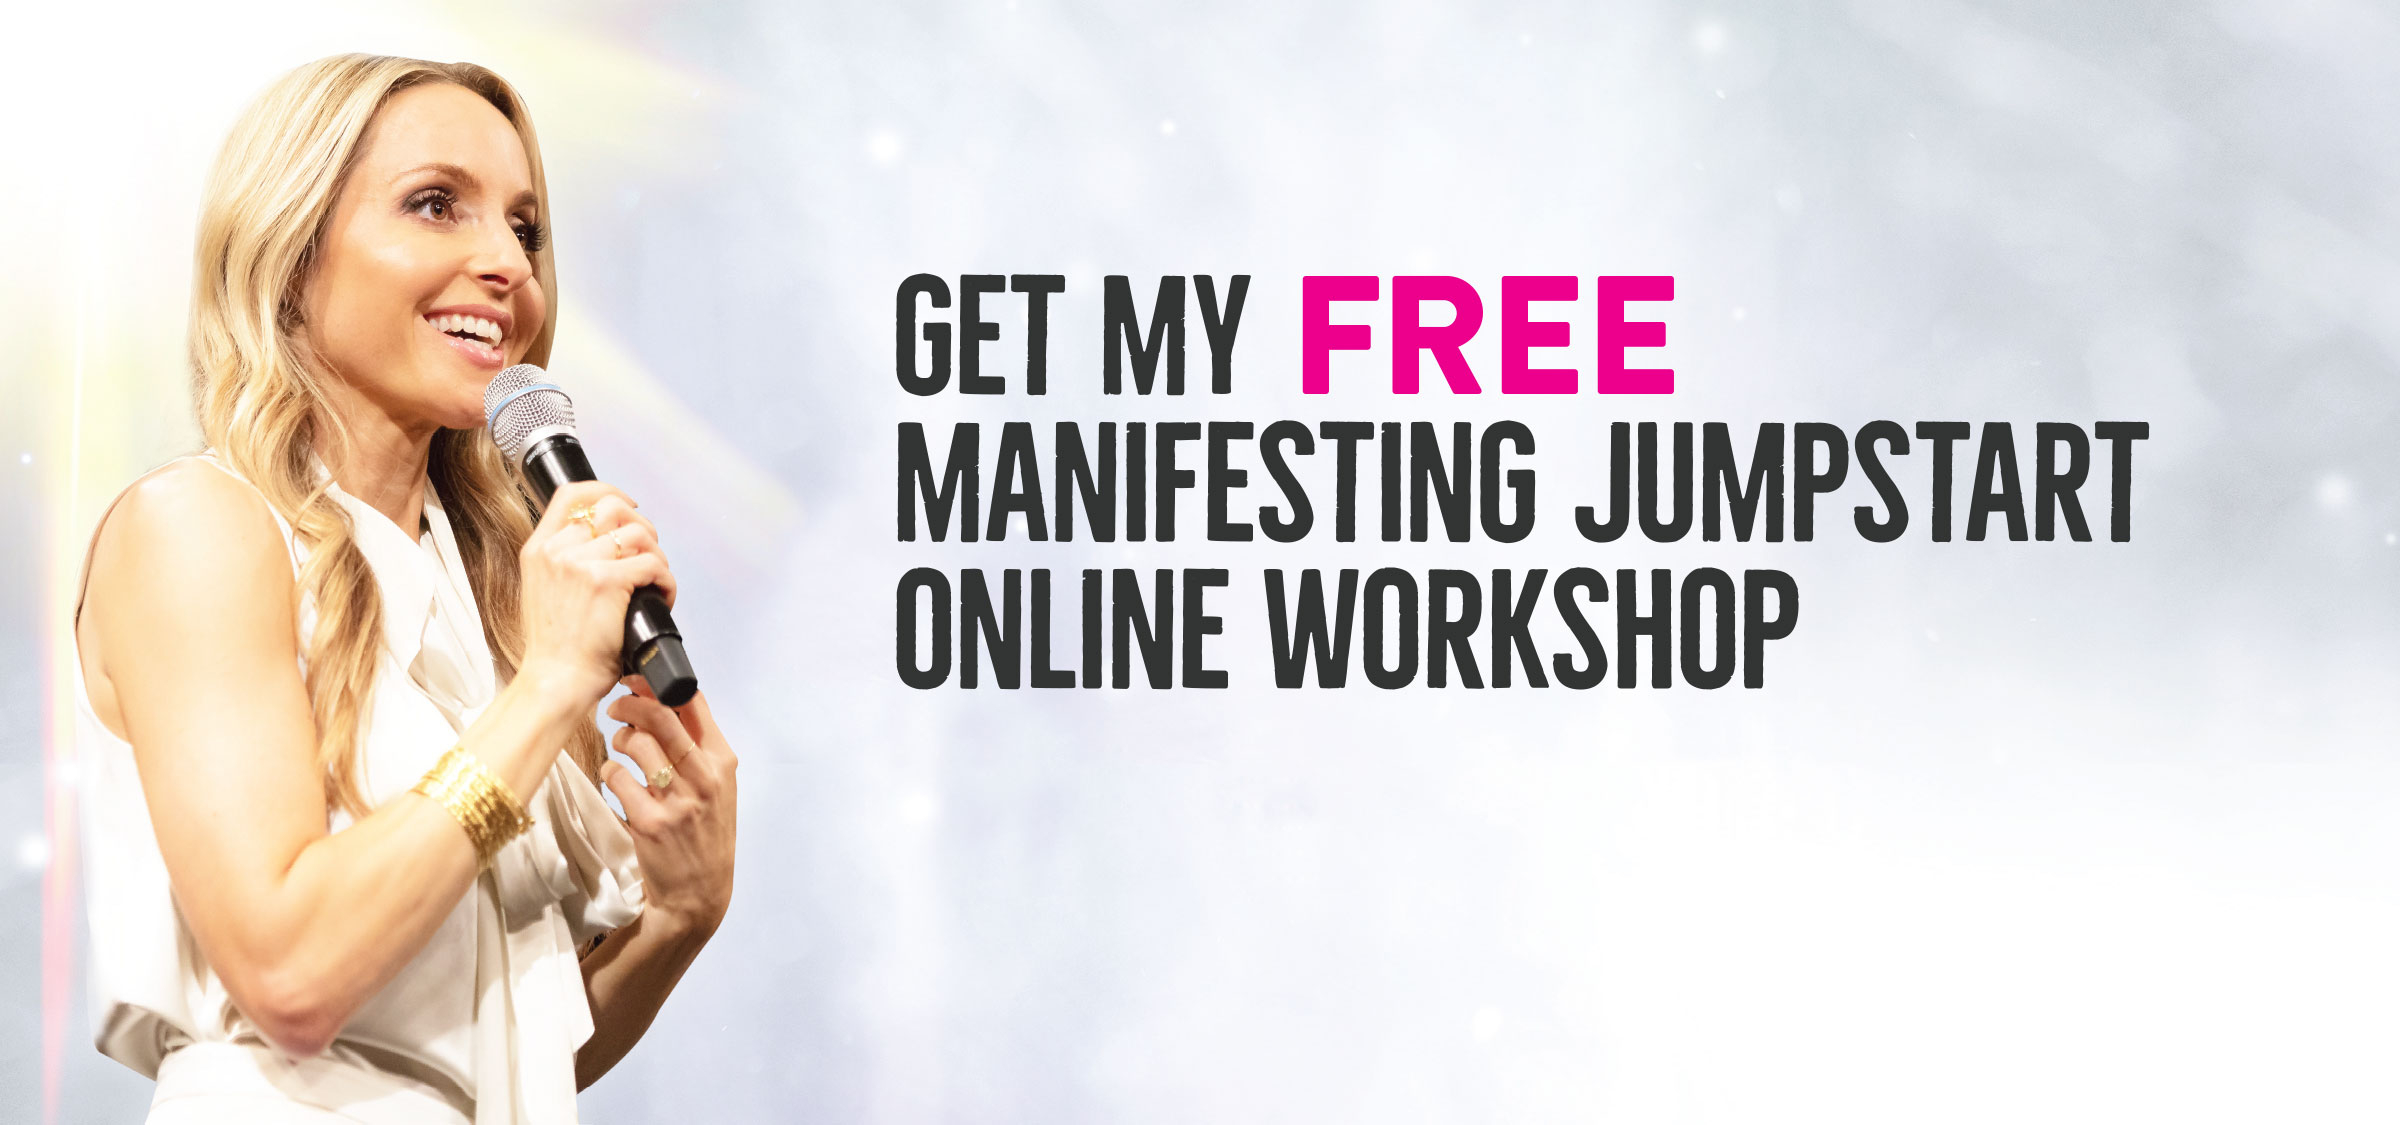 Order Super Attractor by Gabby Bernstein and get the Manifesting Jumpstart Workshop free